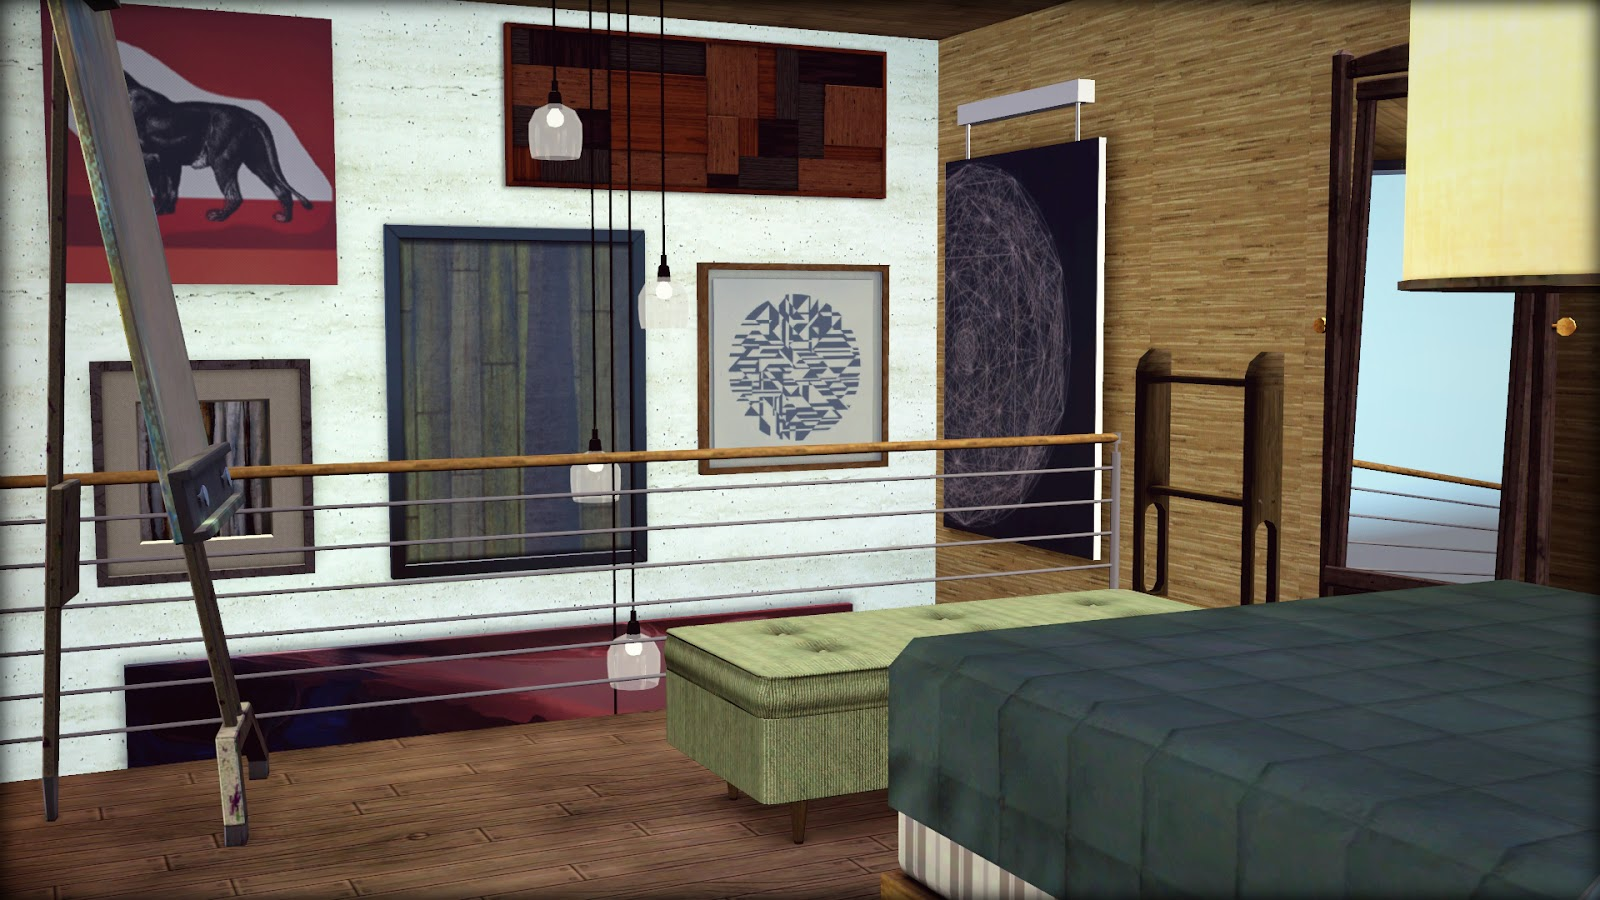 My sims 3 blog powell house by blackwaterkelpy for Powell house